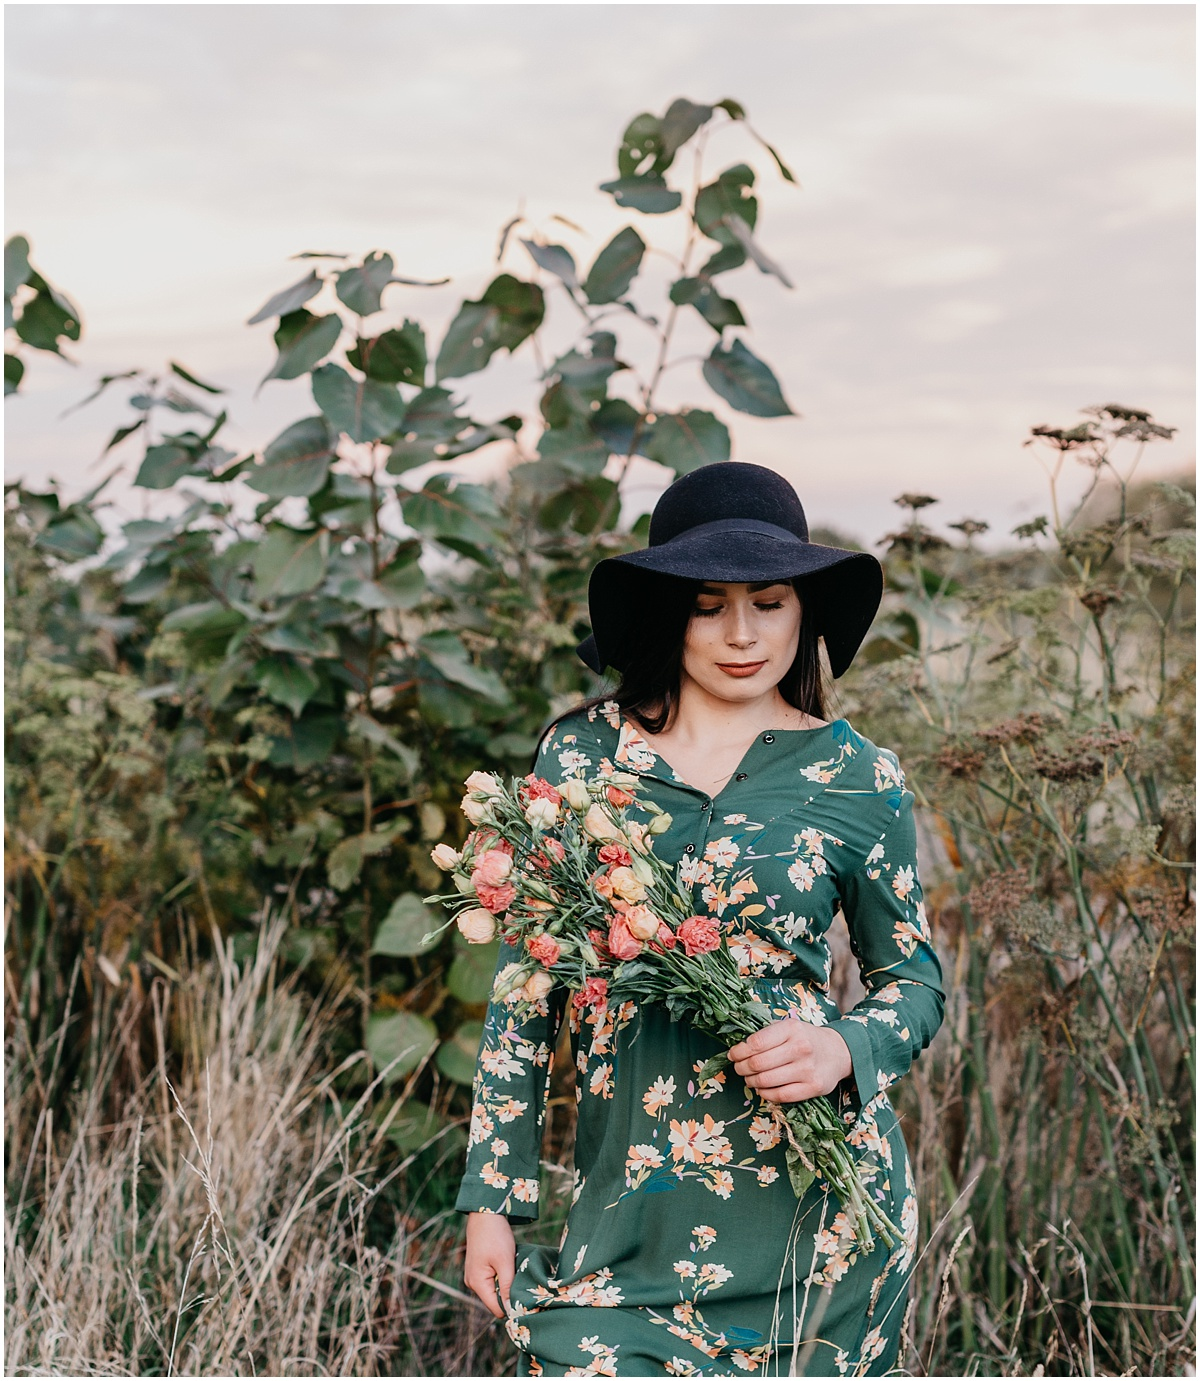 Woman in paddock wearing floral dress holding flowers a